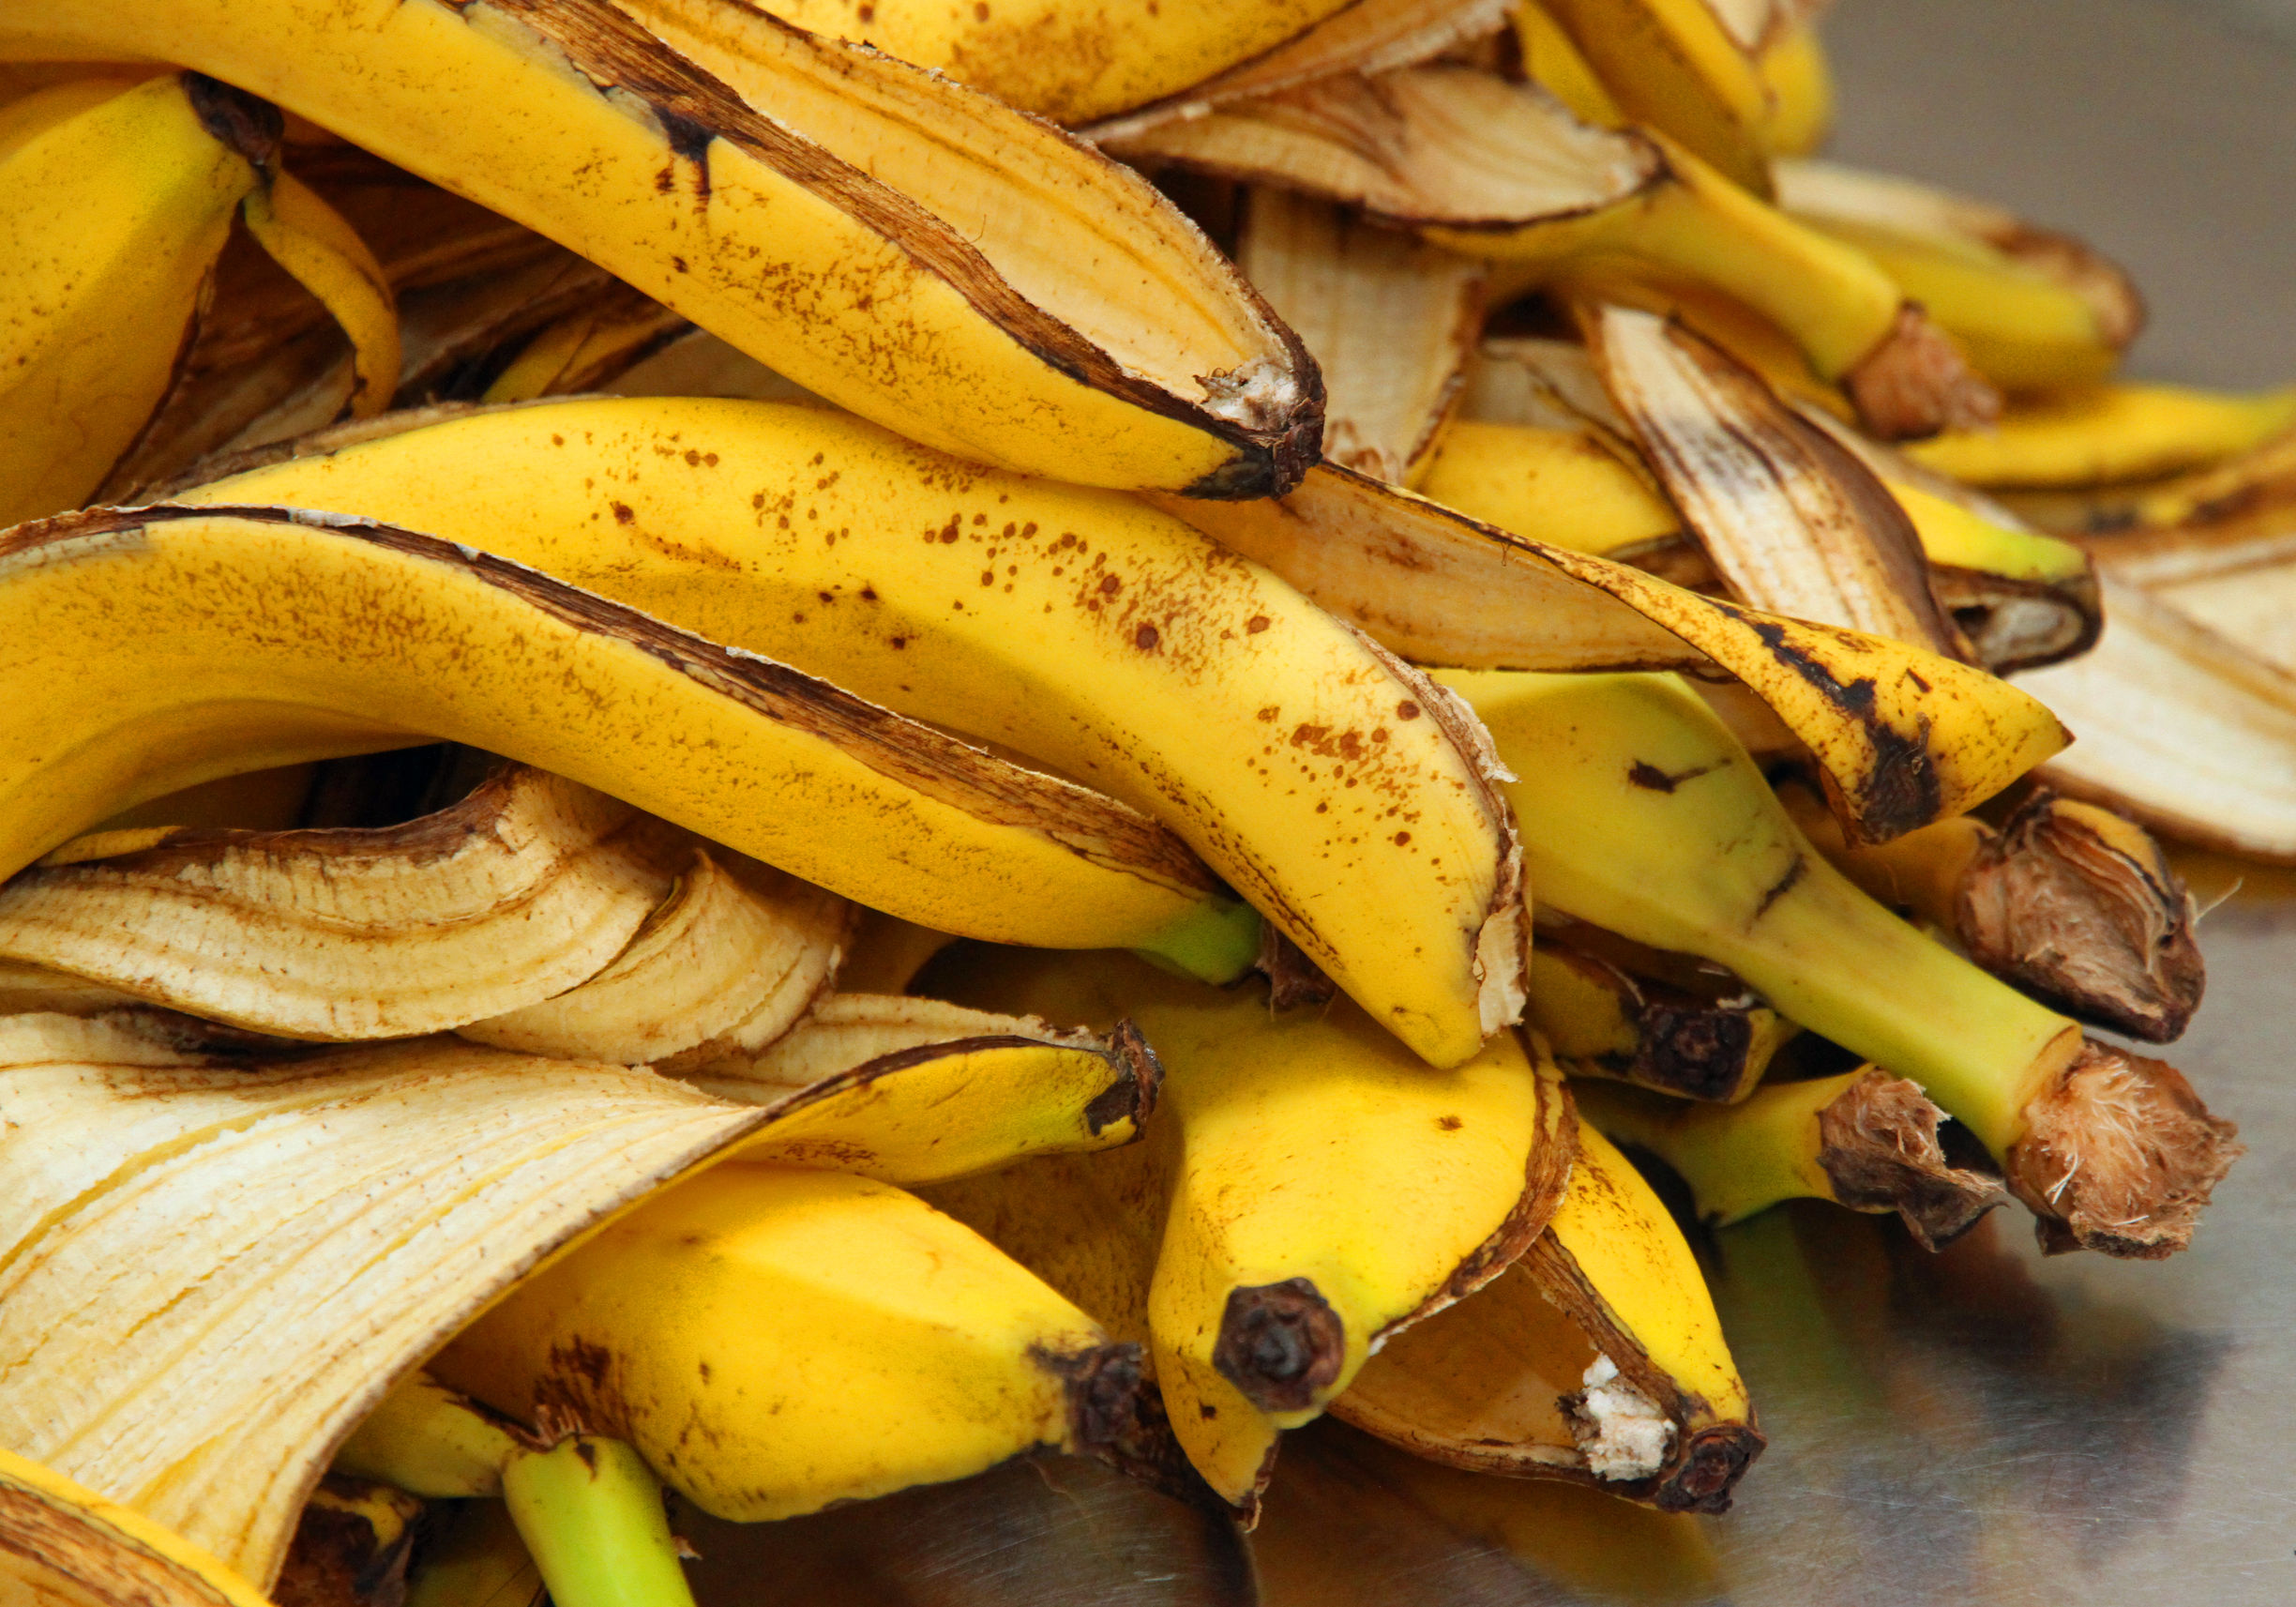 Image result for coaja banana muscata